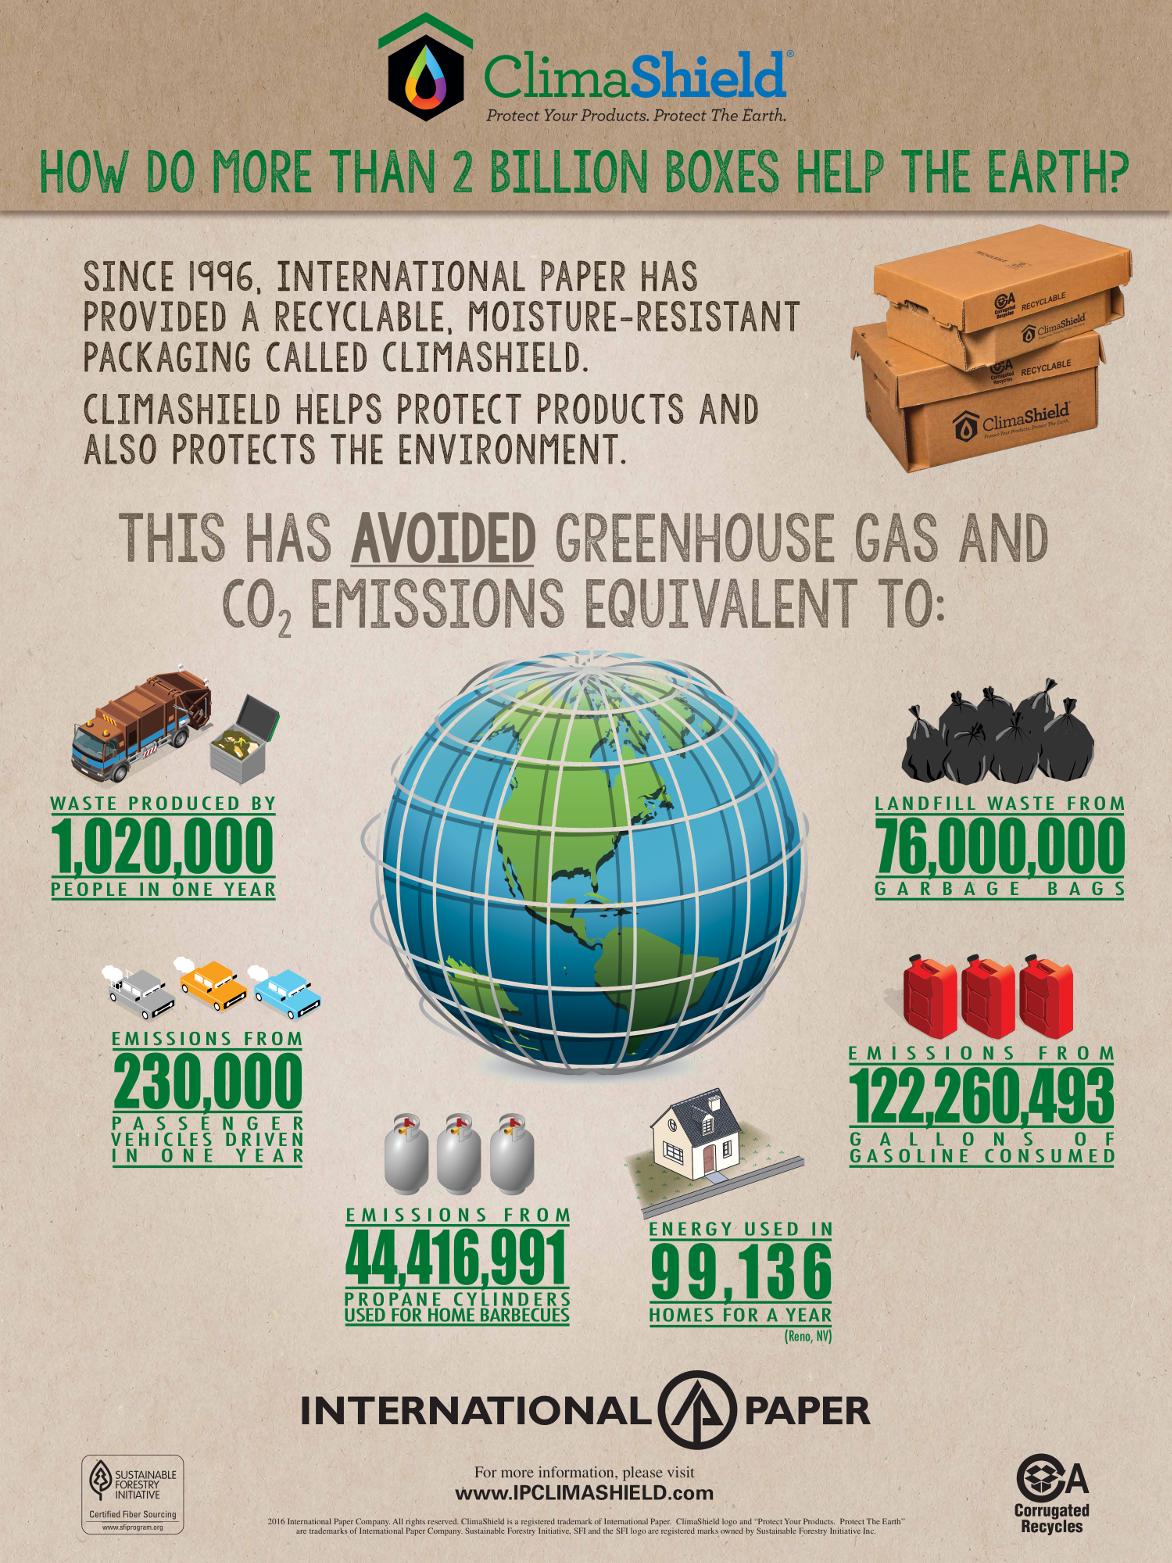 How do 2 billion boxes help the Earth?